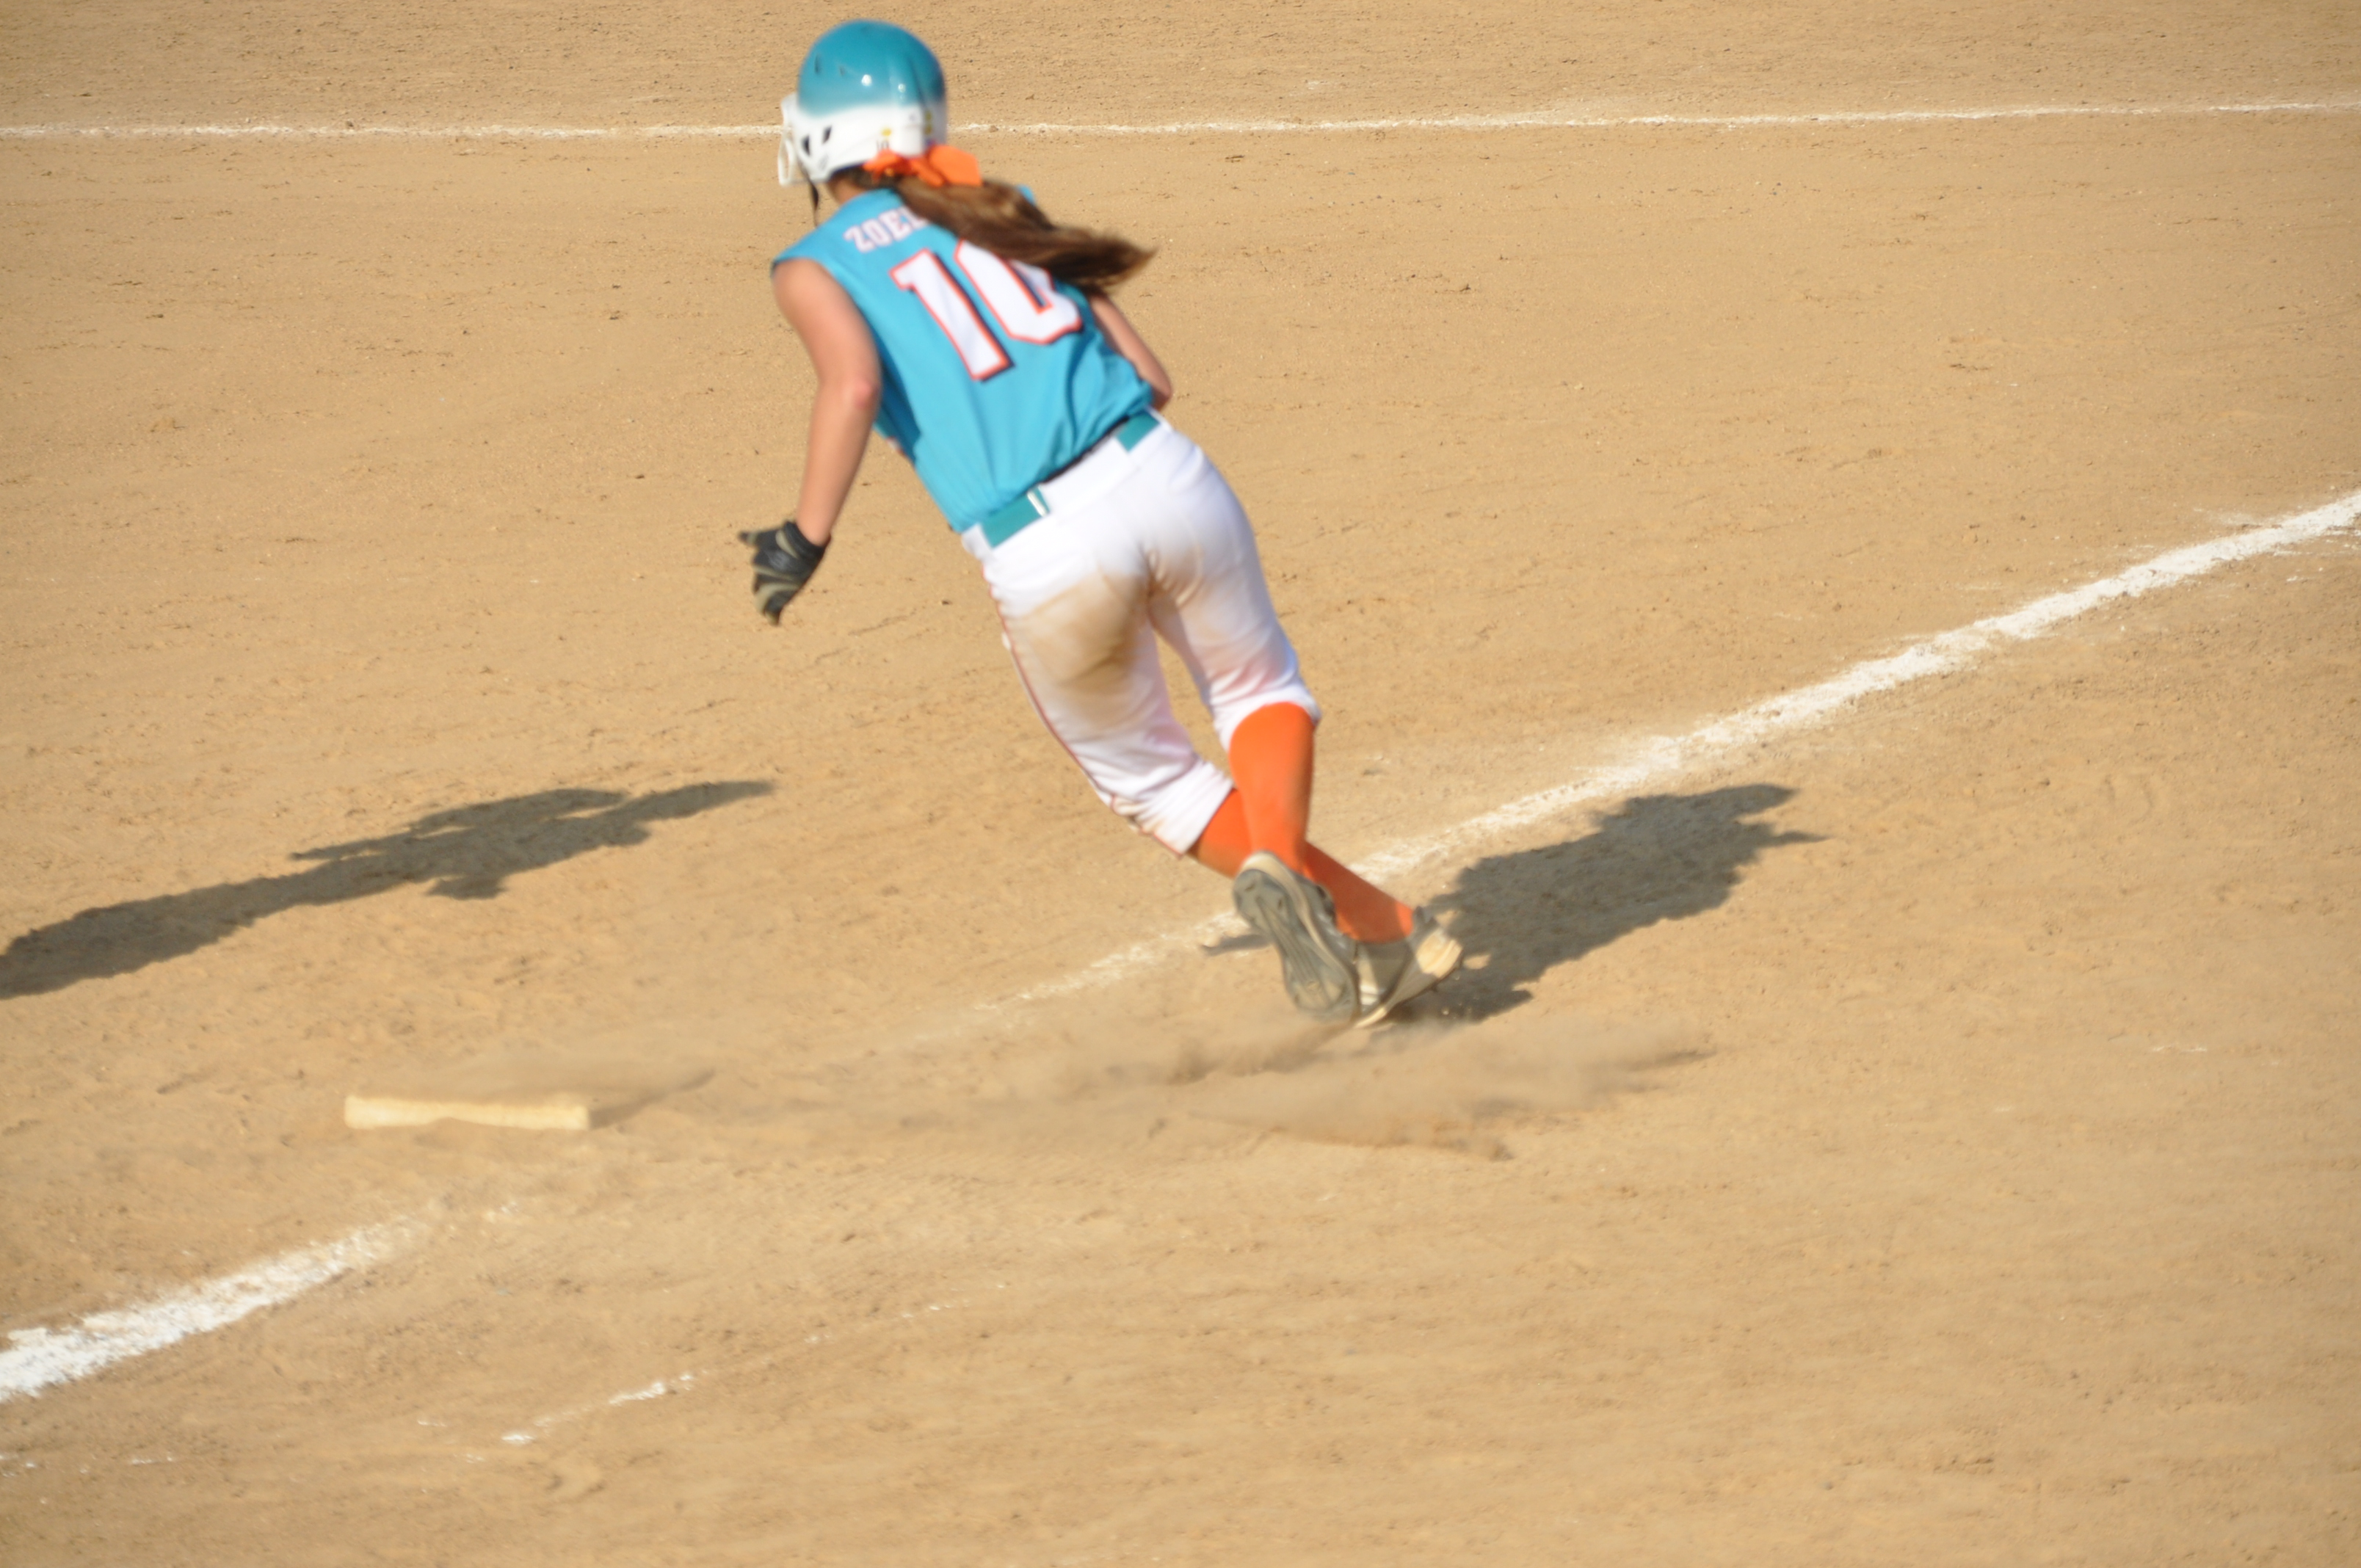 Smart baserunning can make the difference between winning and losing.